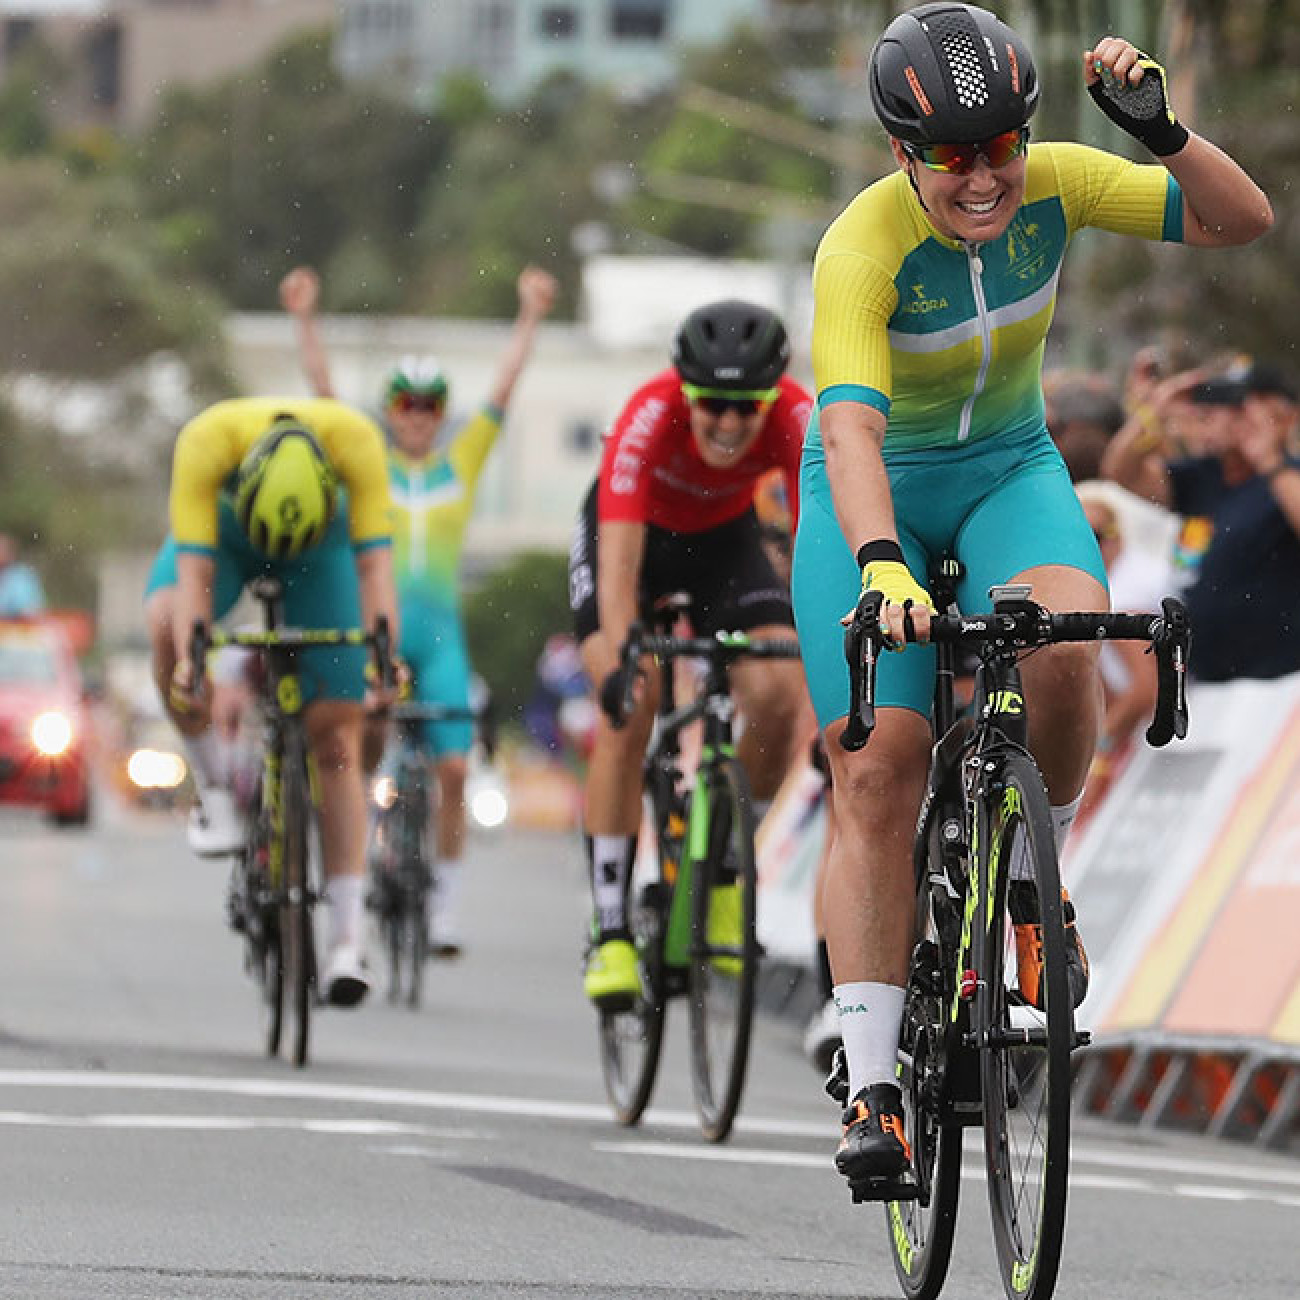 Australia's Chloe Hosking celebrates winning gold during the Road Race.